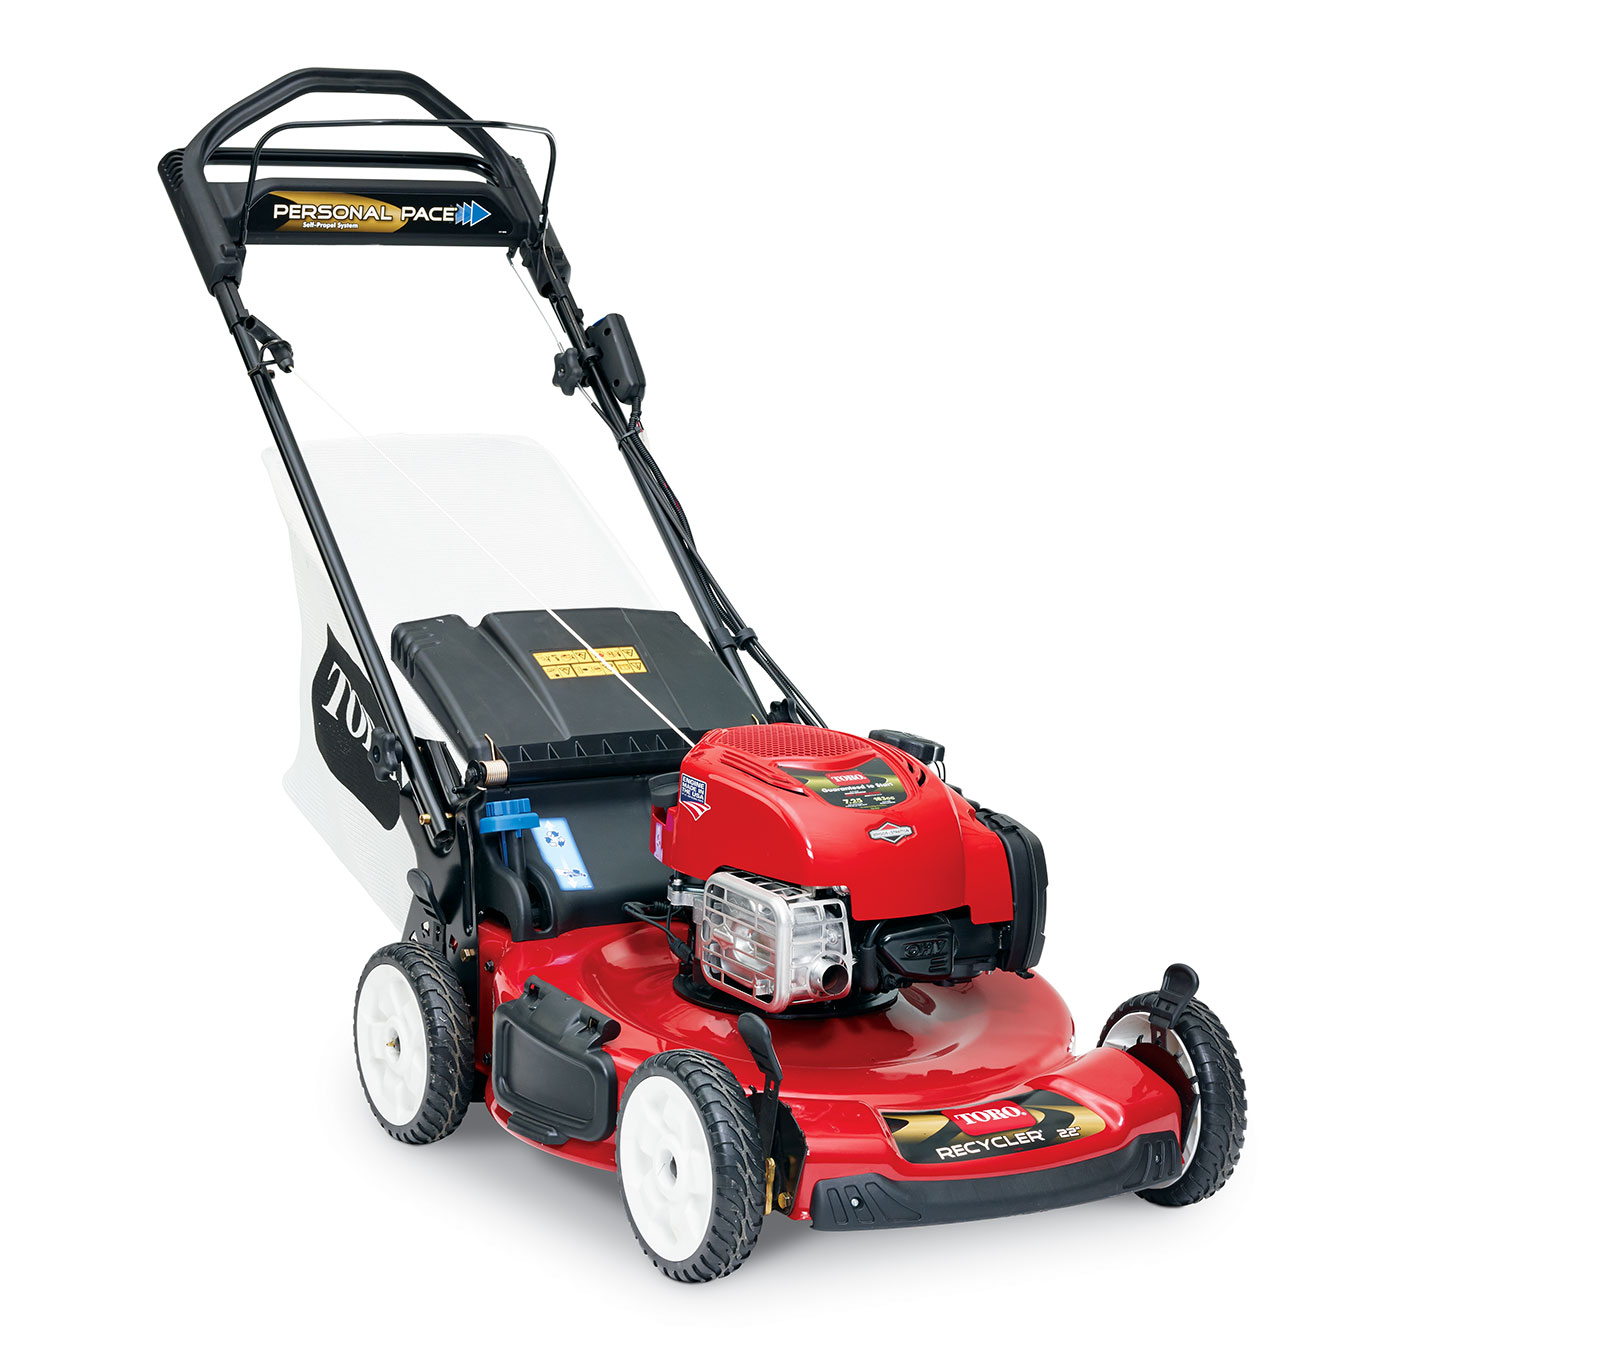 toro 22 56 cm personal pace electric start lawn mower rh toro com toro  riding lawn mower wiring diagram